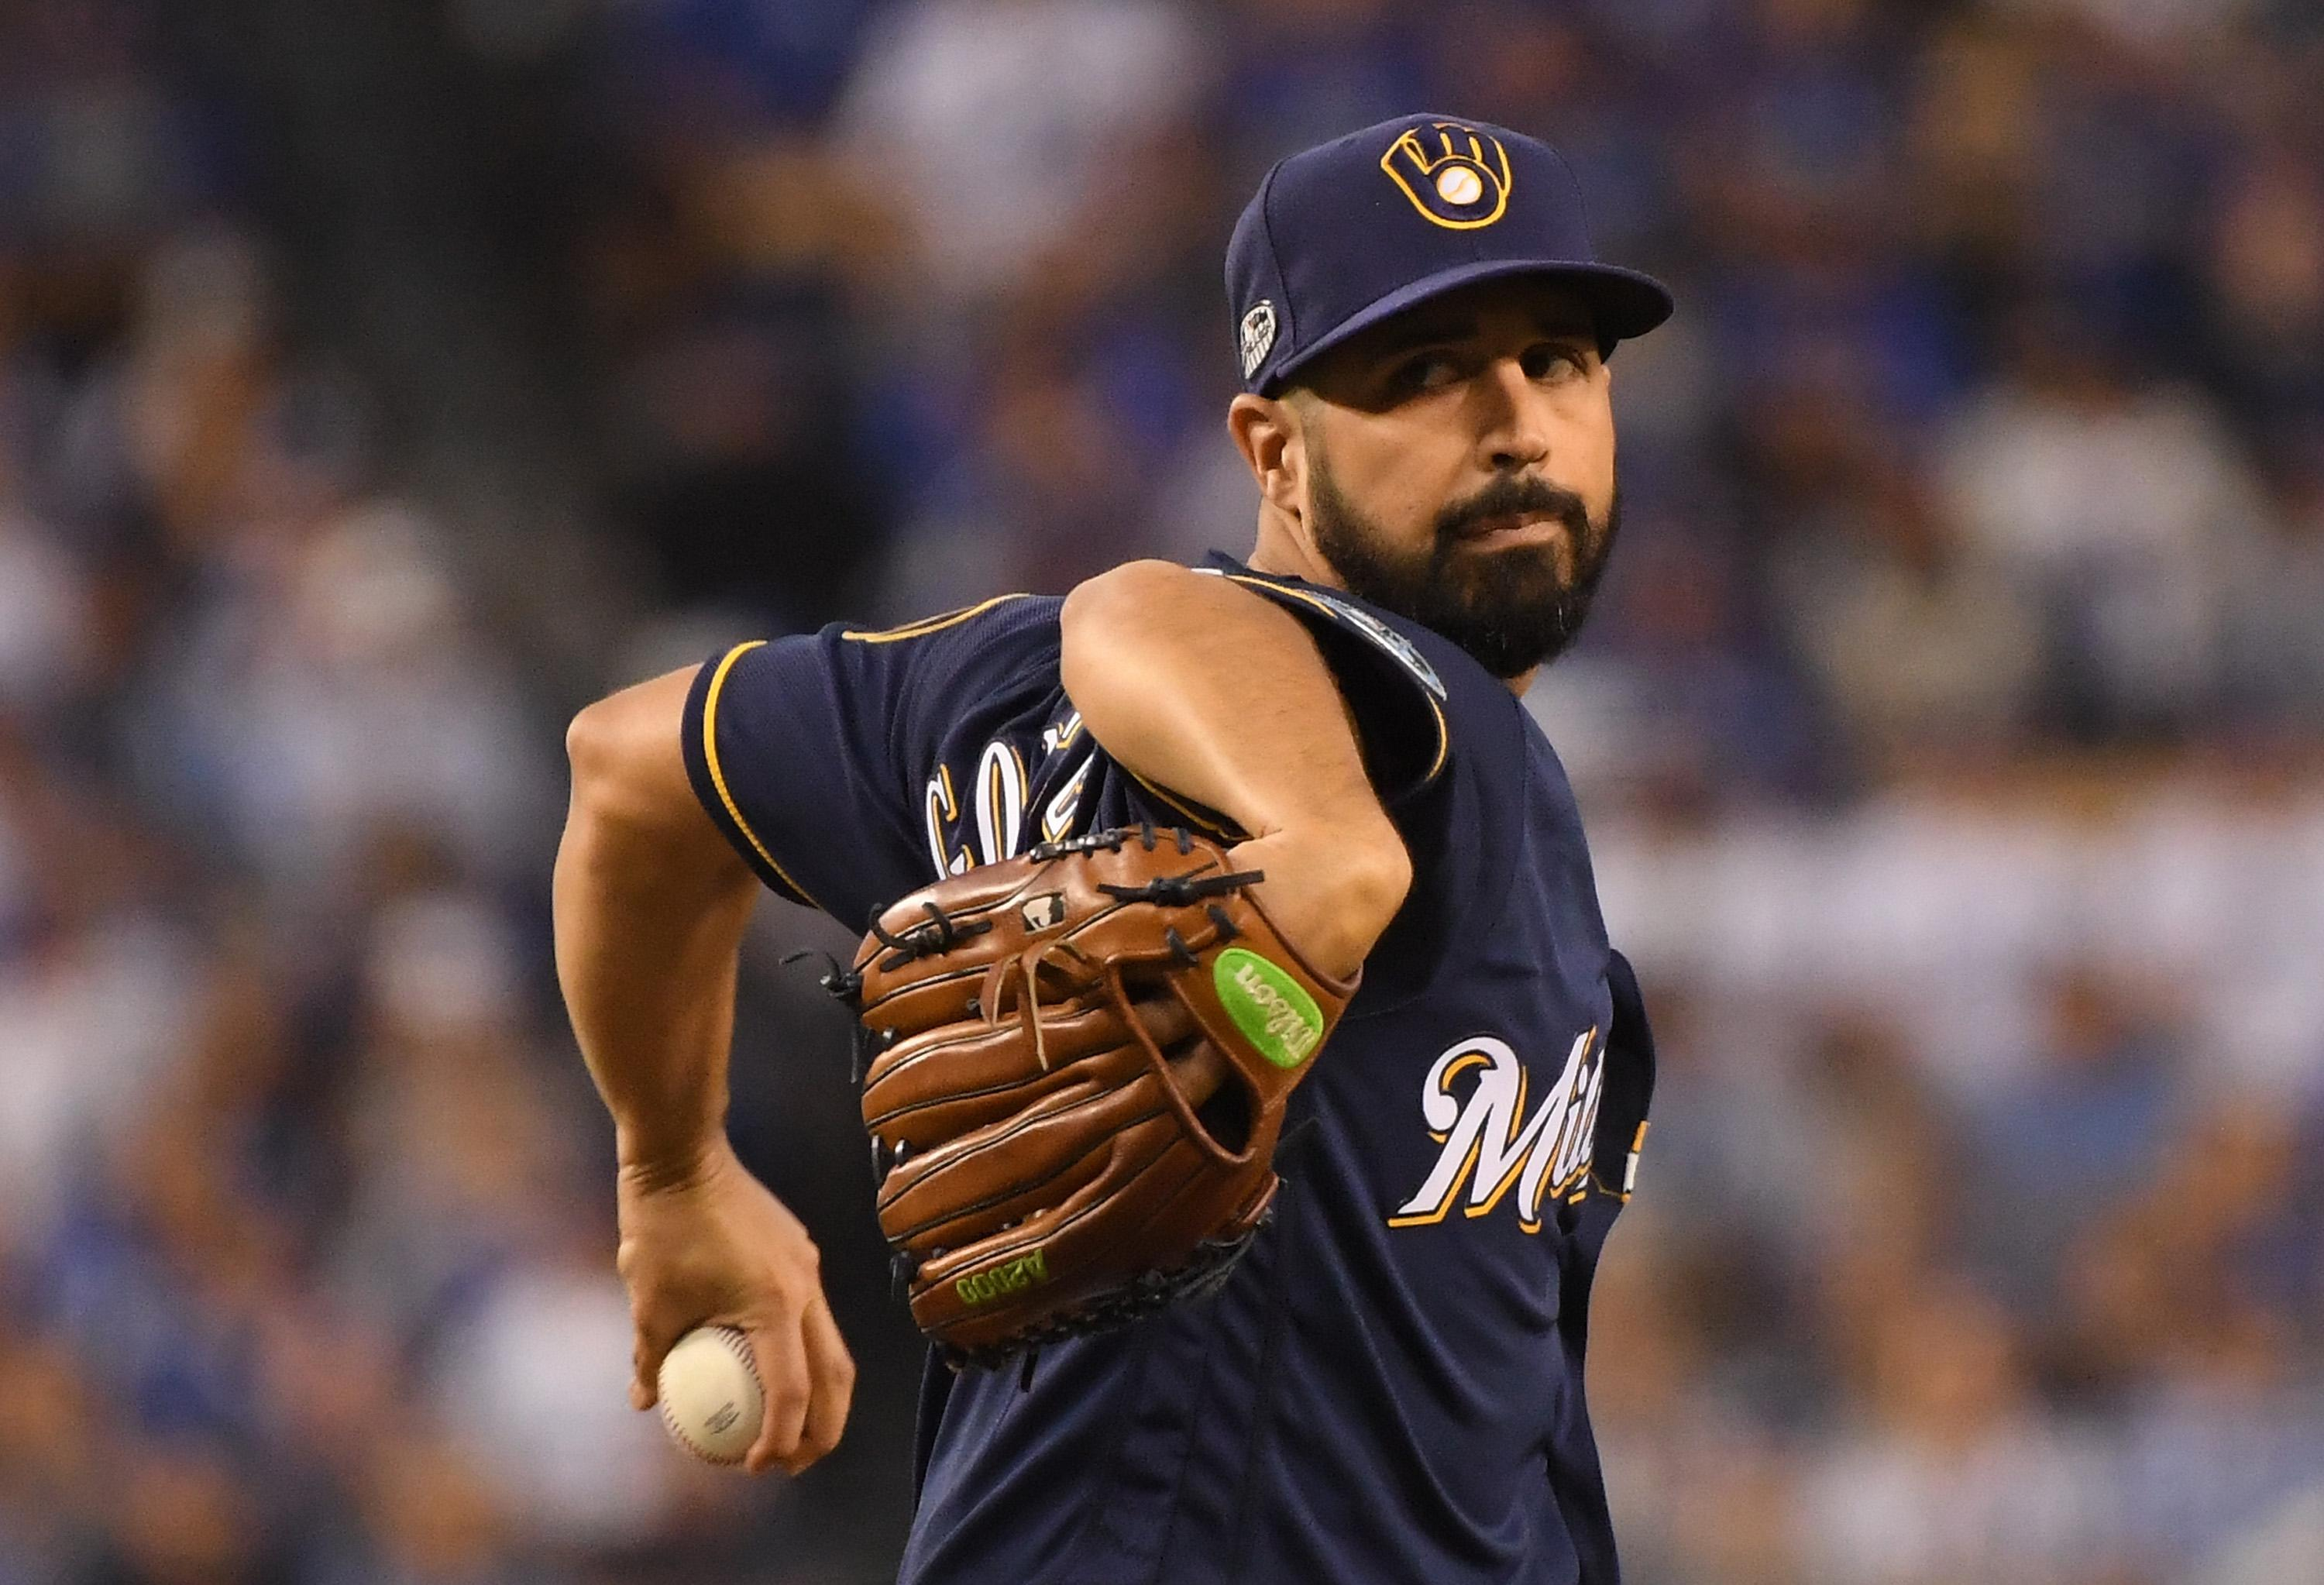 MLB Rumors: Yankees, Gio Gonzalez Reach Agreement, $3 Million Base In Majors